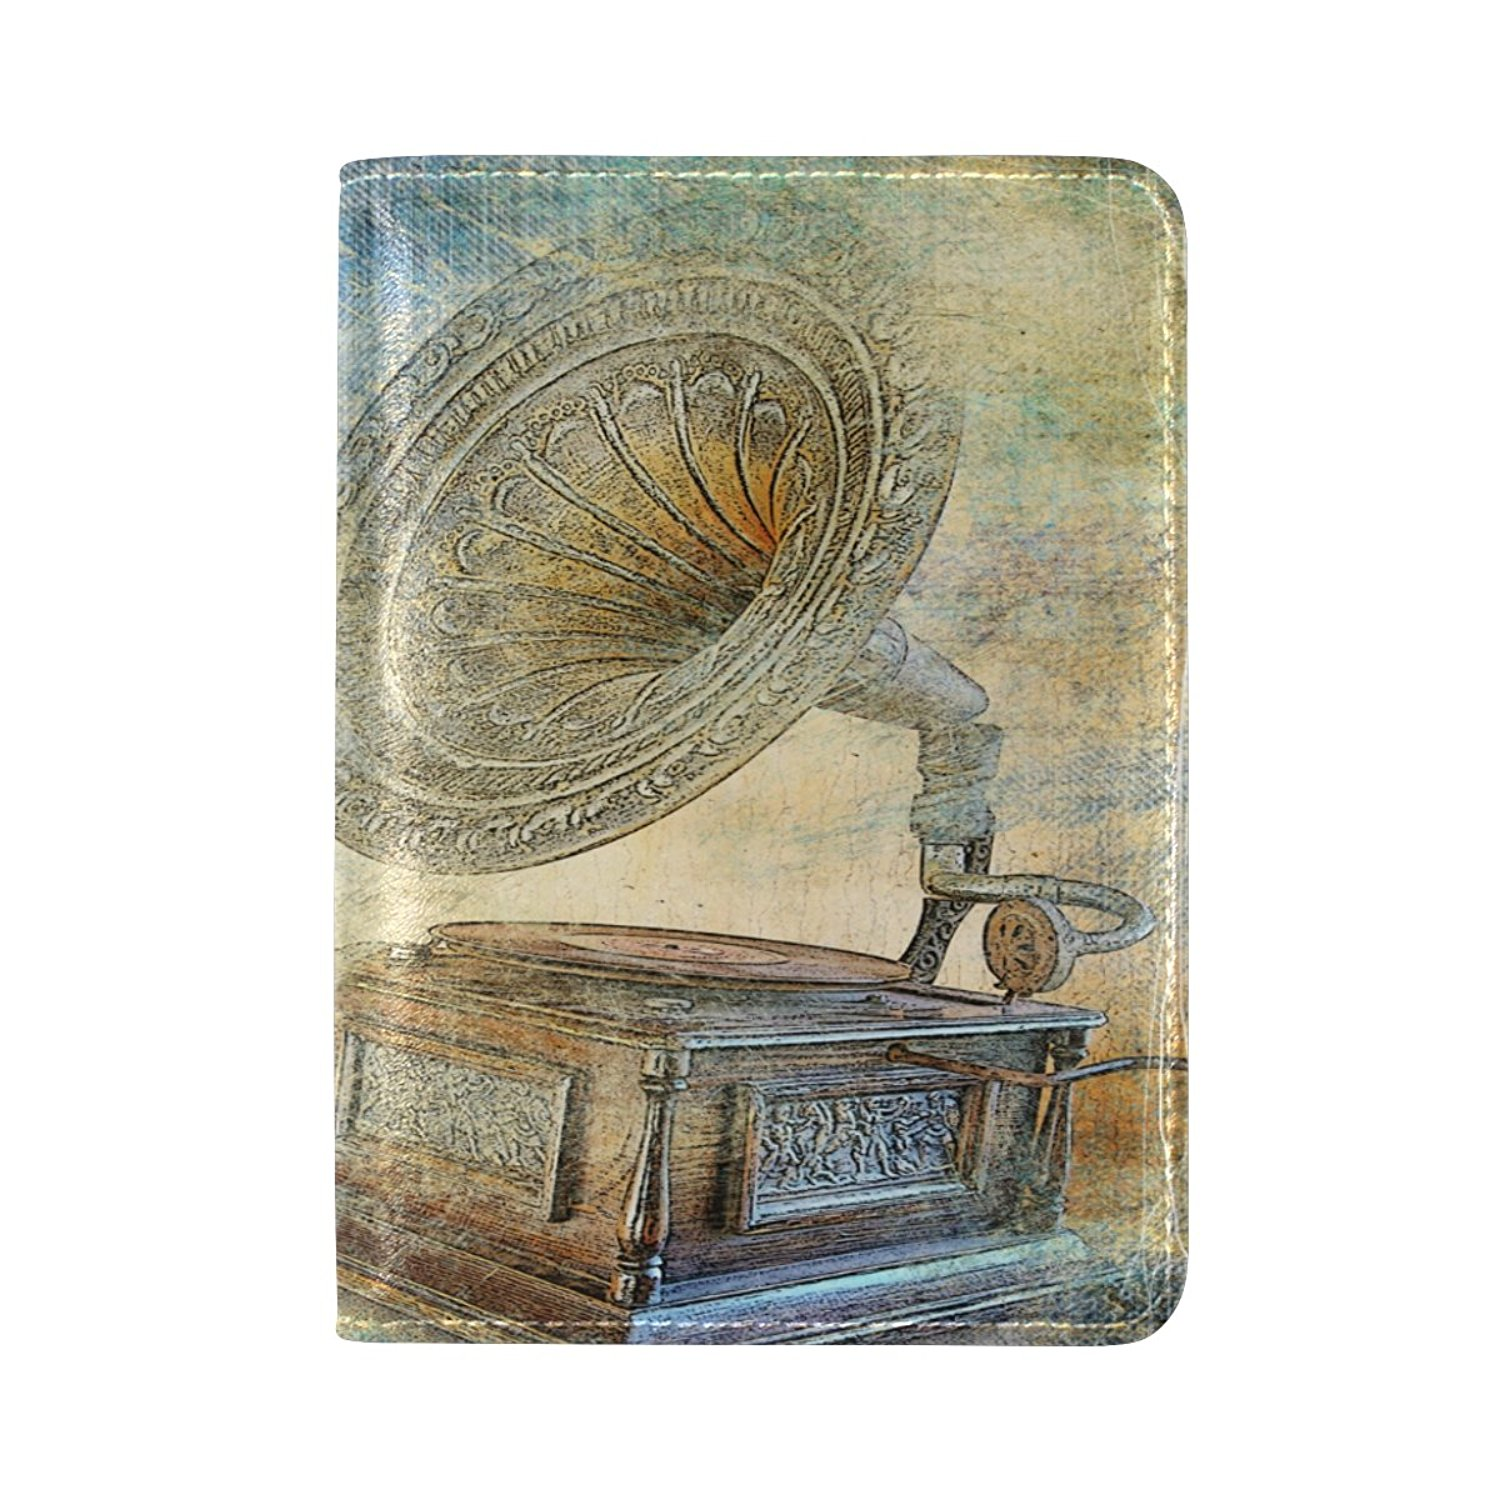 Sunlome Vintage Gramophone Pattern Leather Passport Holder Cover Travel Wallet Case